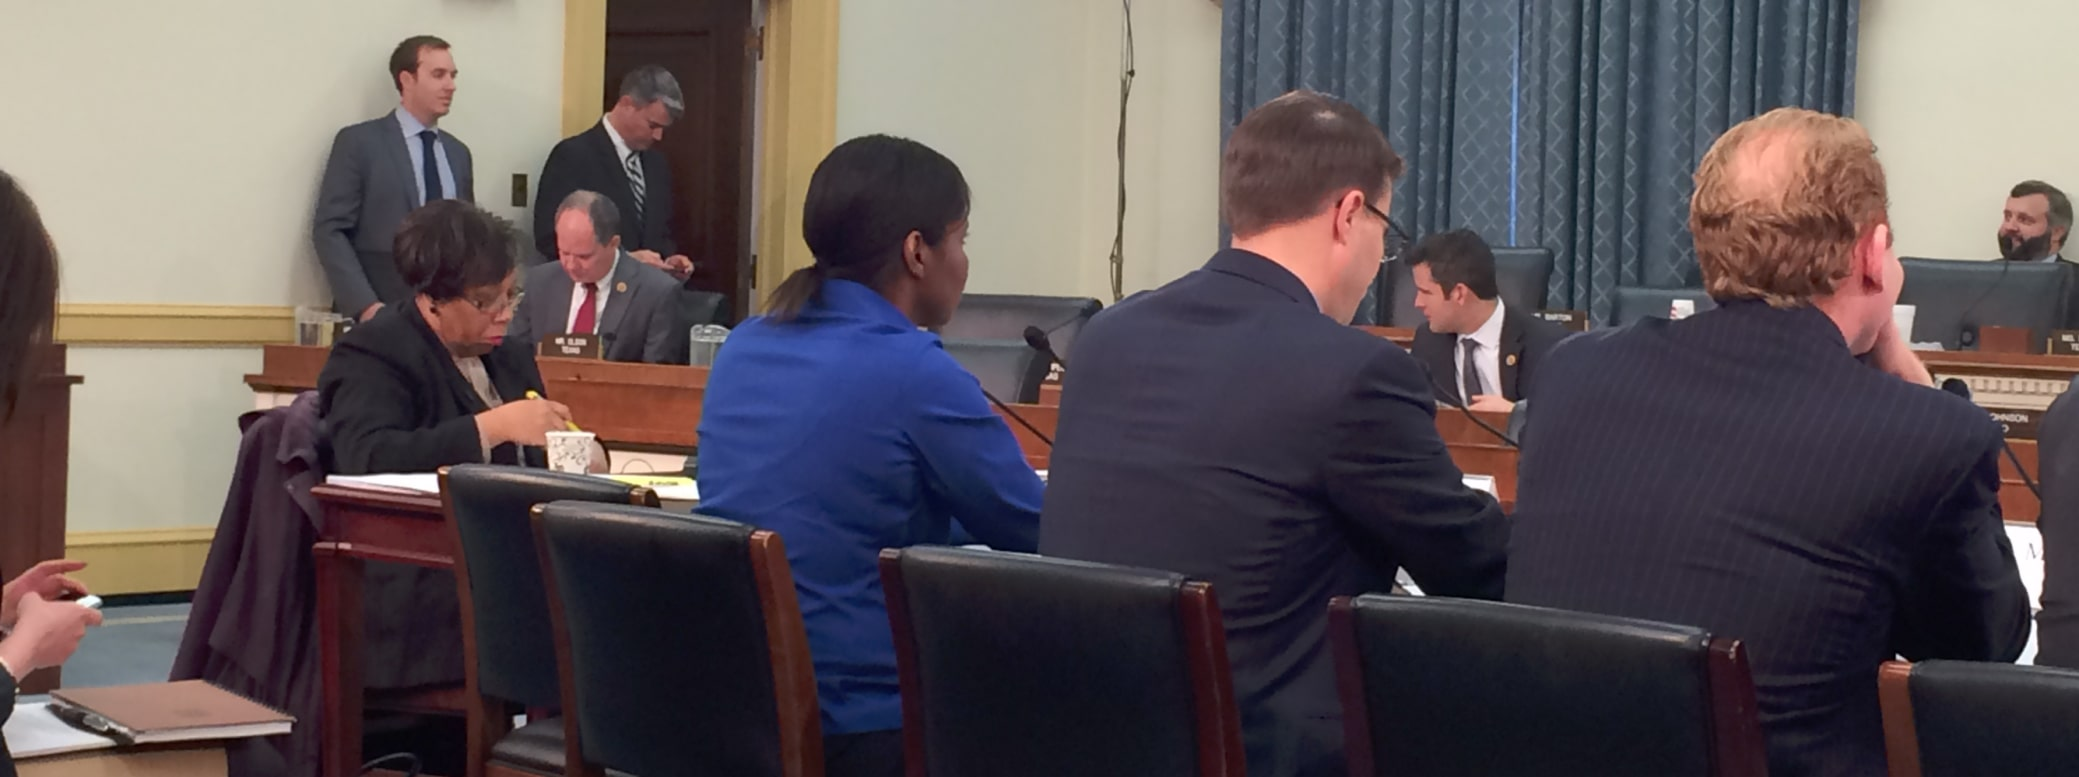 Briana Scurry giving testimony